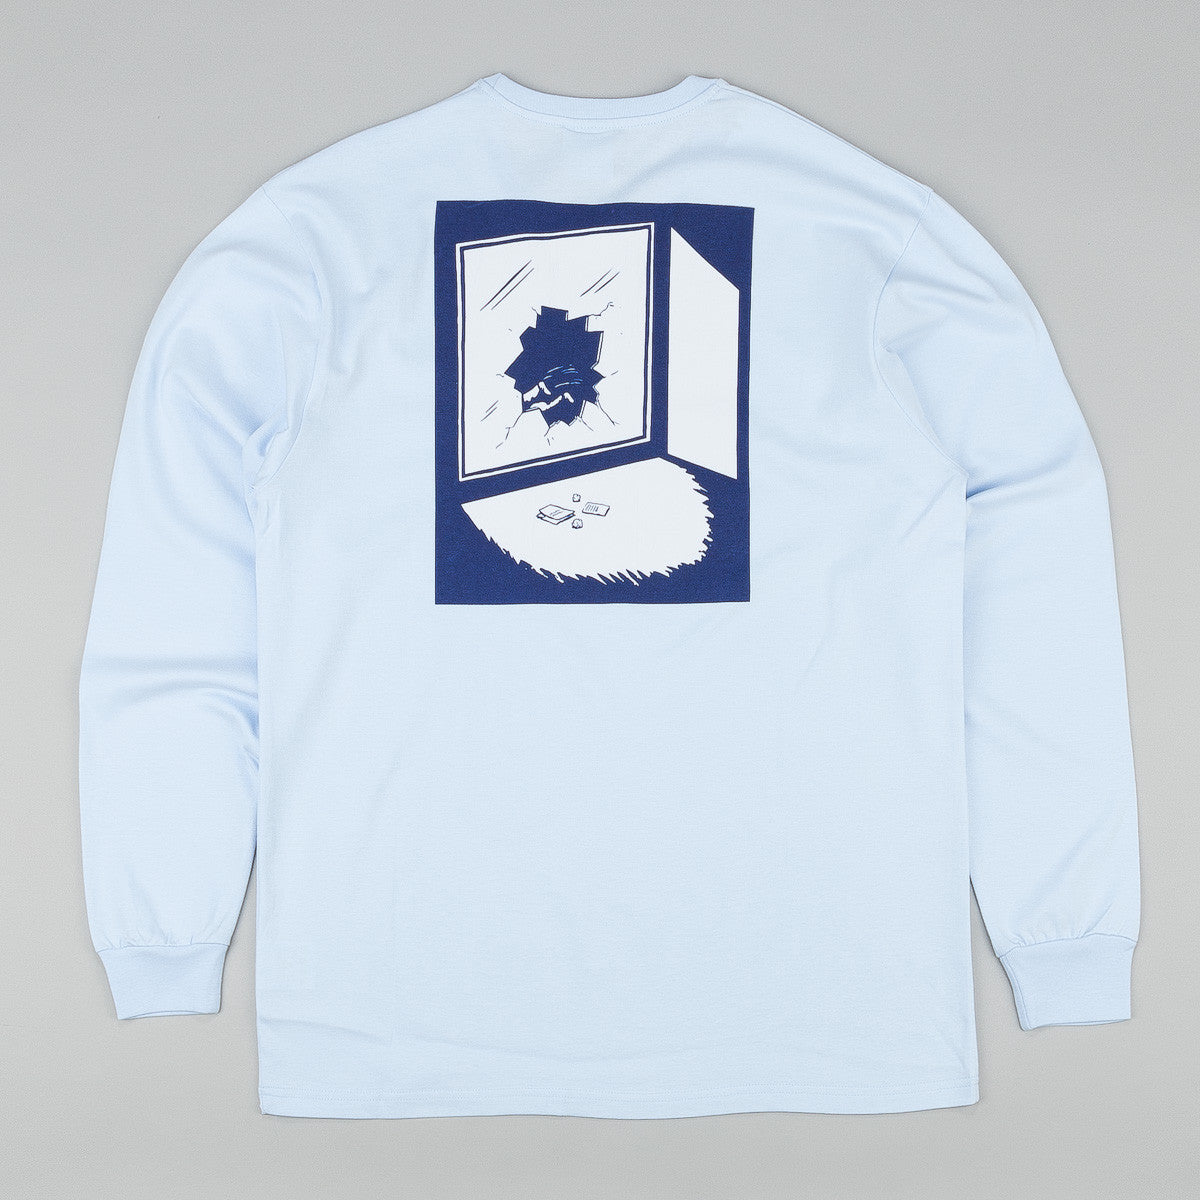 Polar Jacob's Corner Fuck It Long Sleeve T-Shirt - Pastel Blue / Navy / White